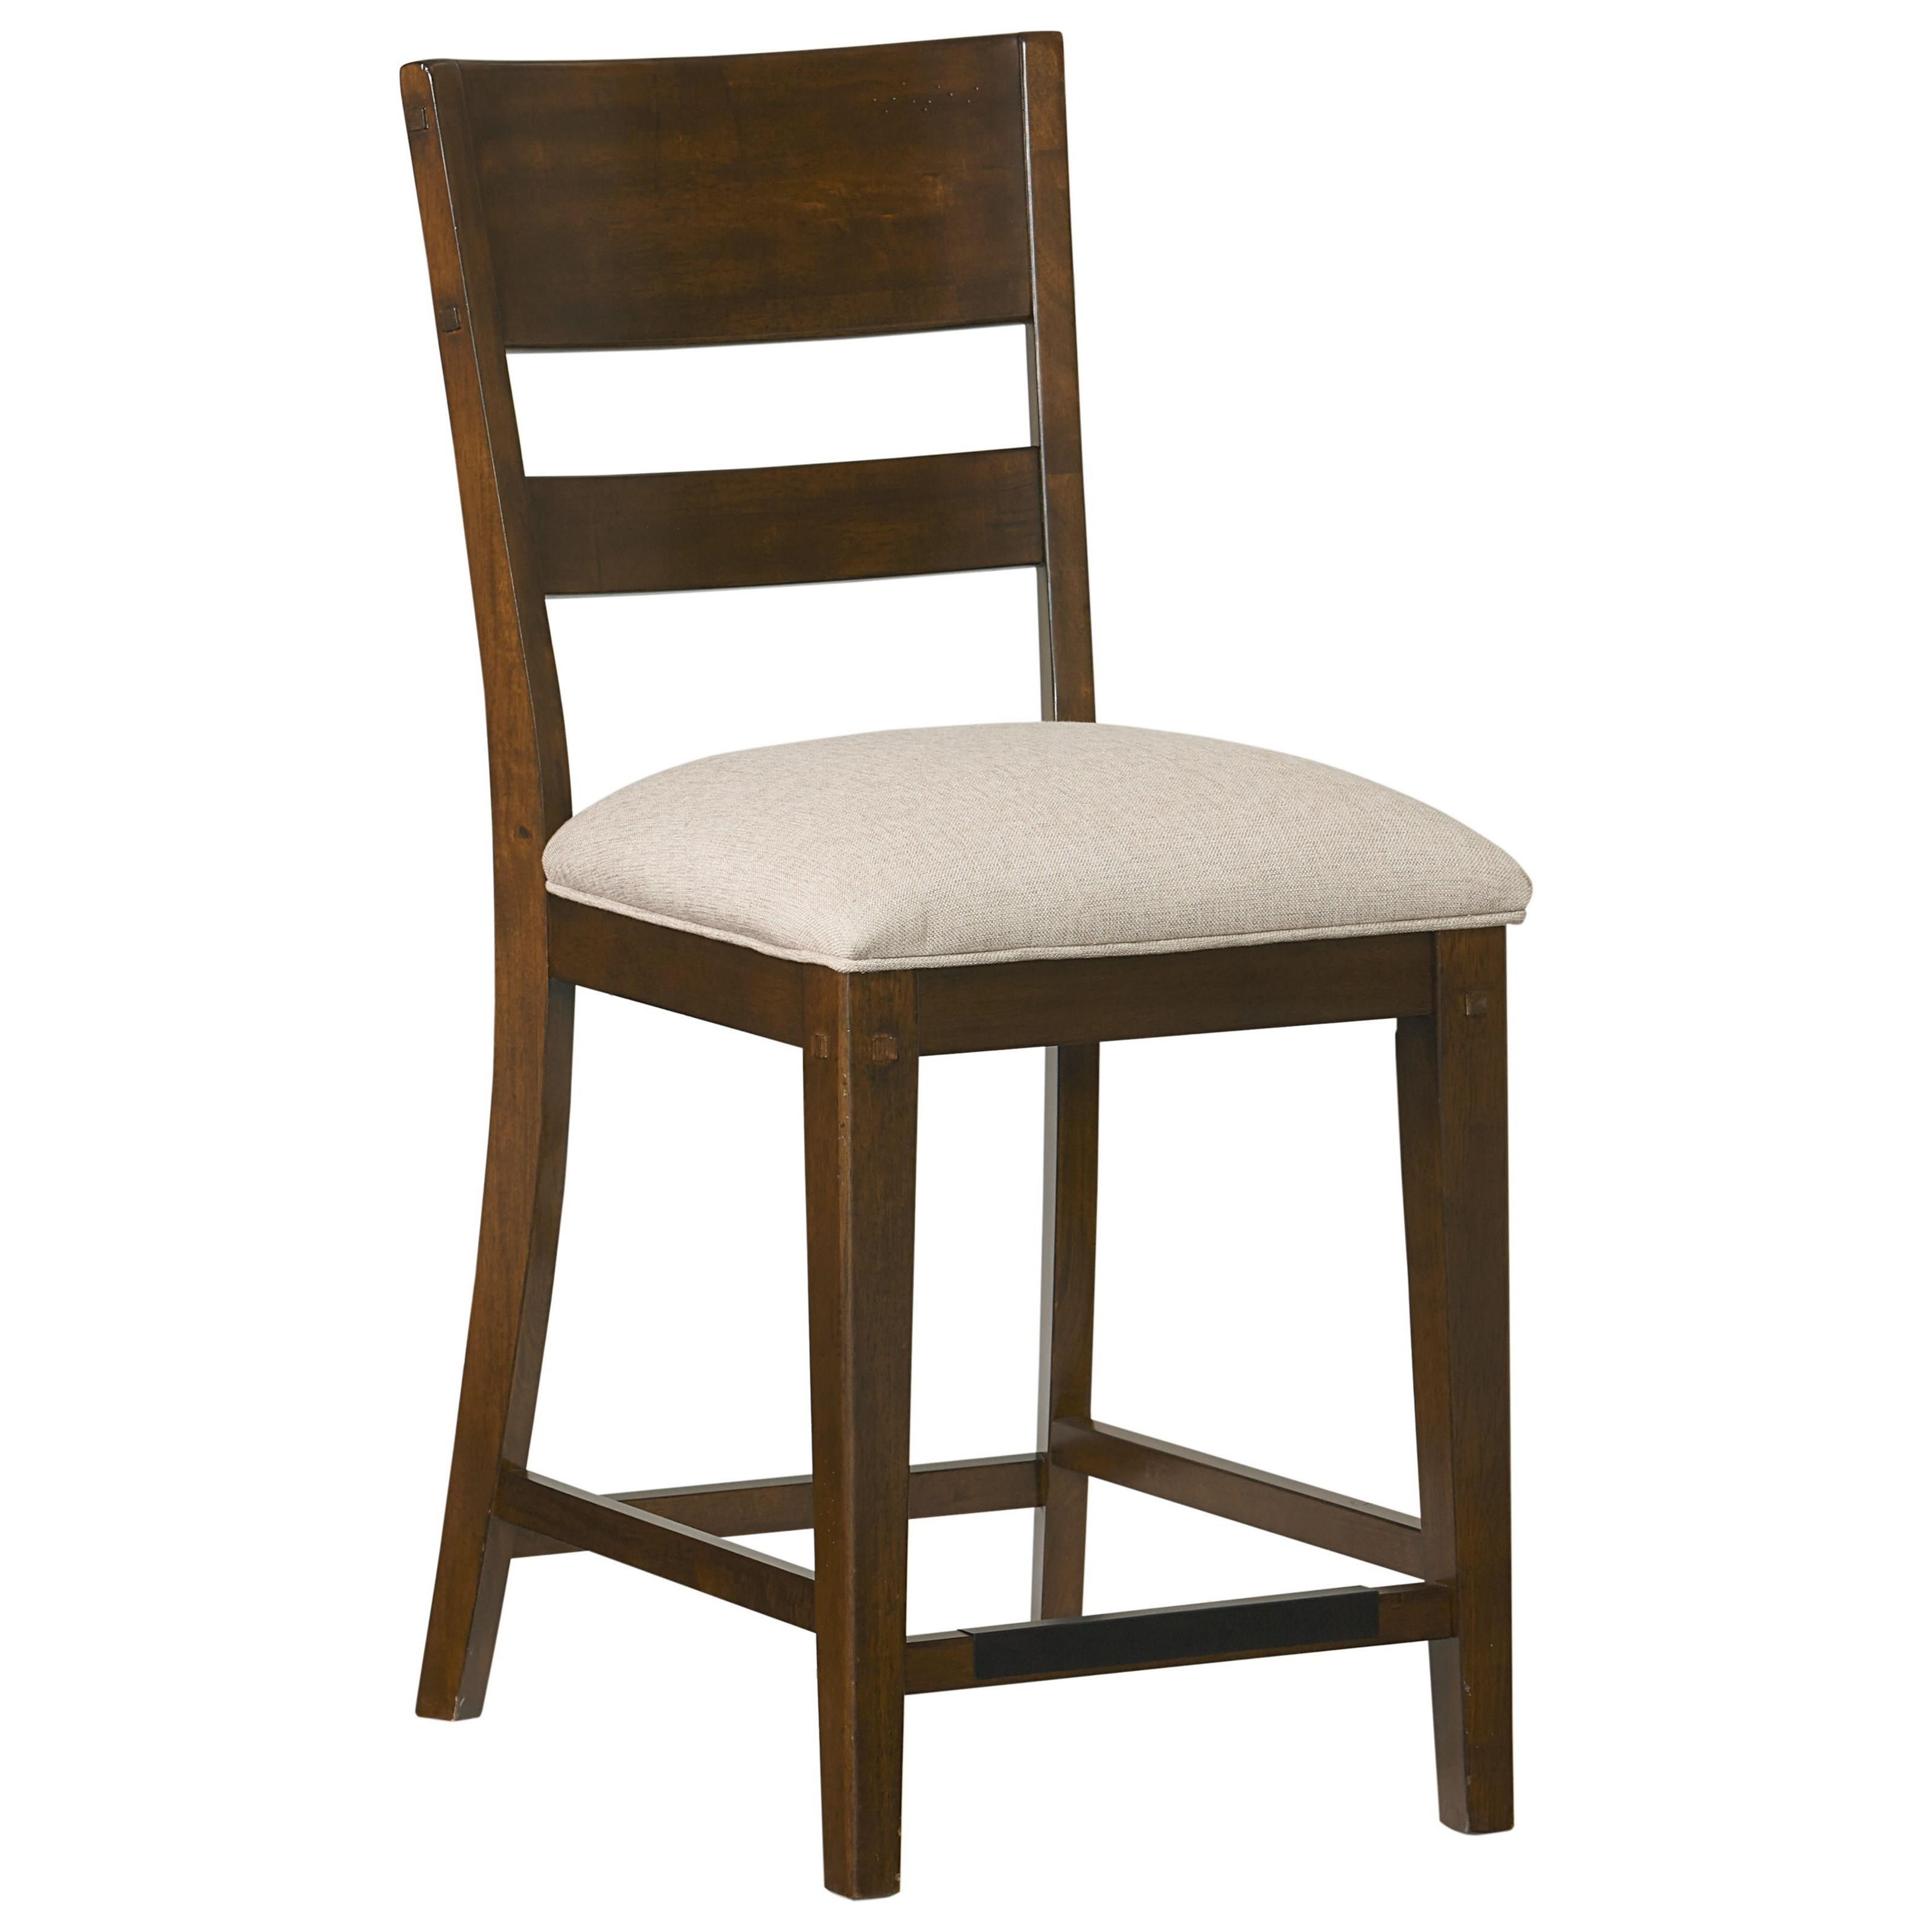 Standard furniture cameron 14314 rustic upholstered counter height stool furniture superstore - Standard counter height stool ...